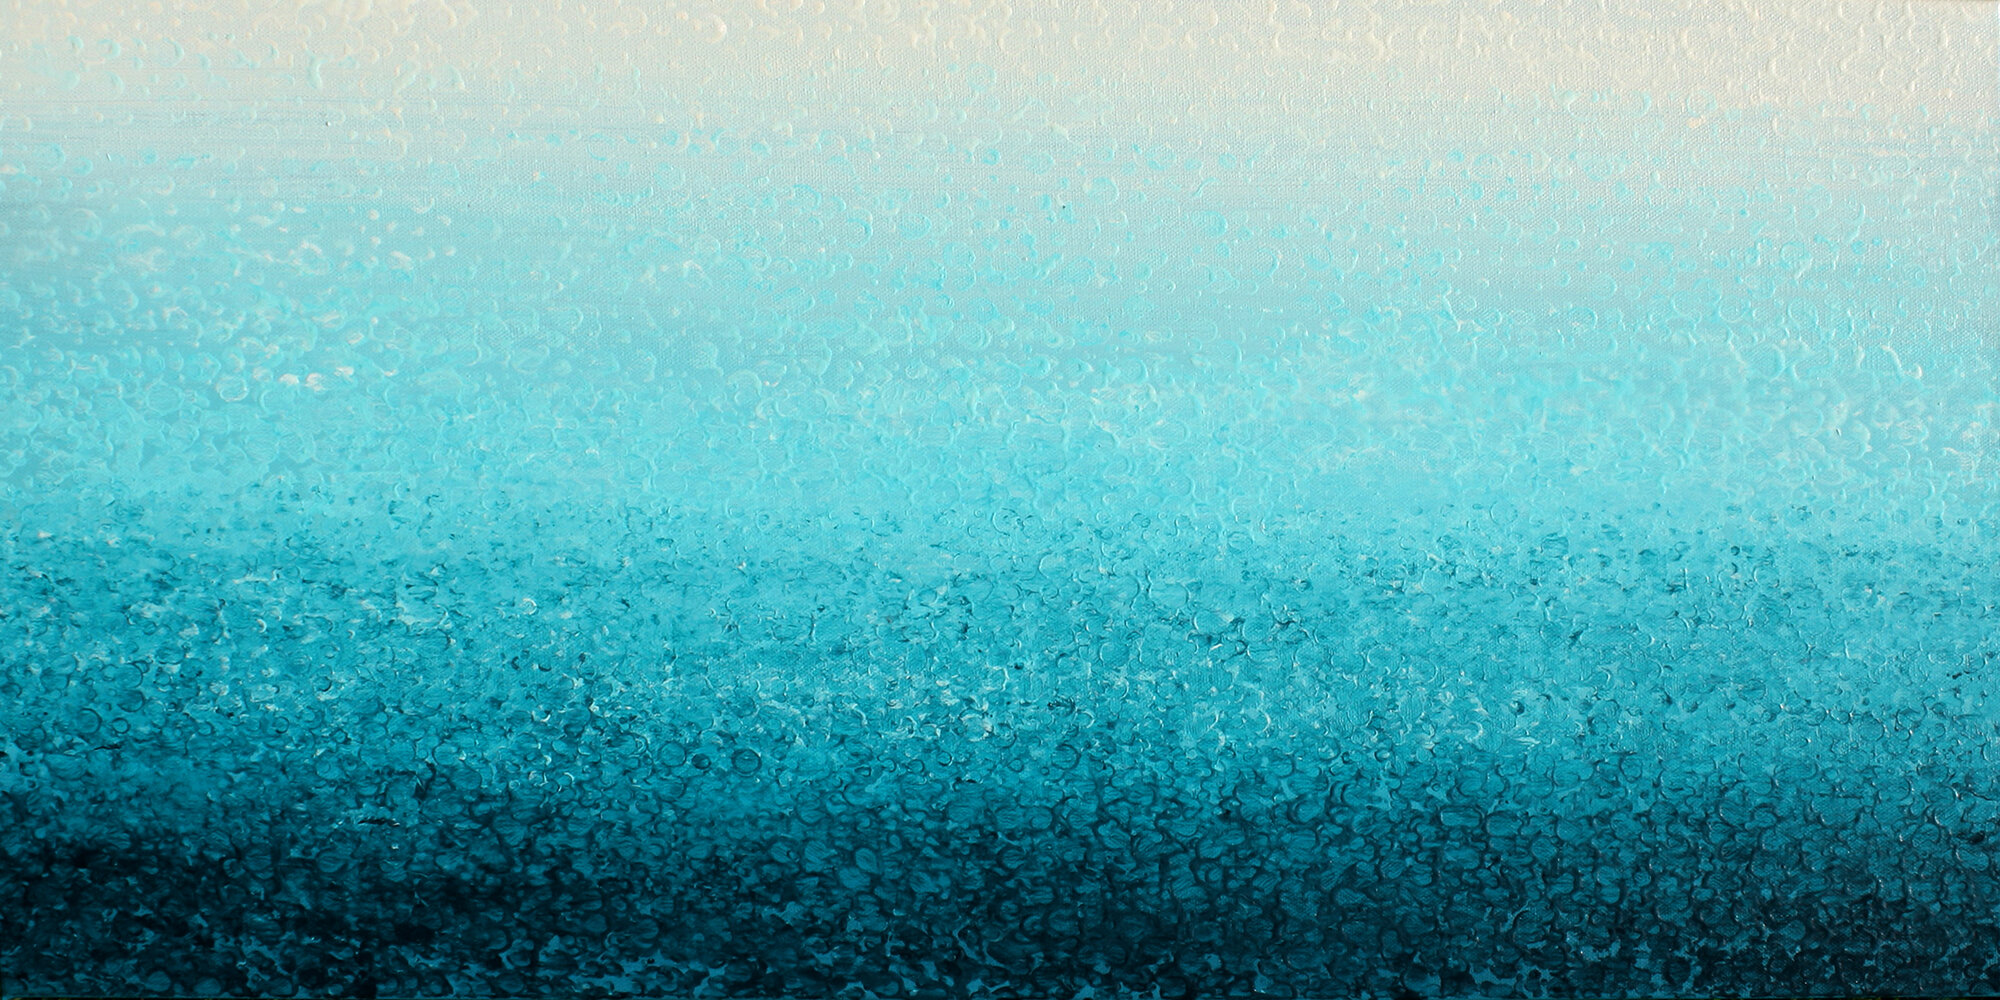 TurquoiseAbstracted.jpg